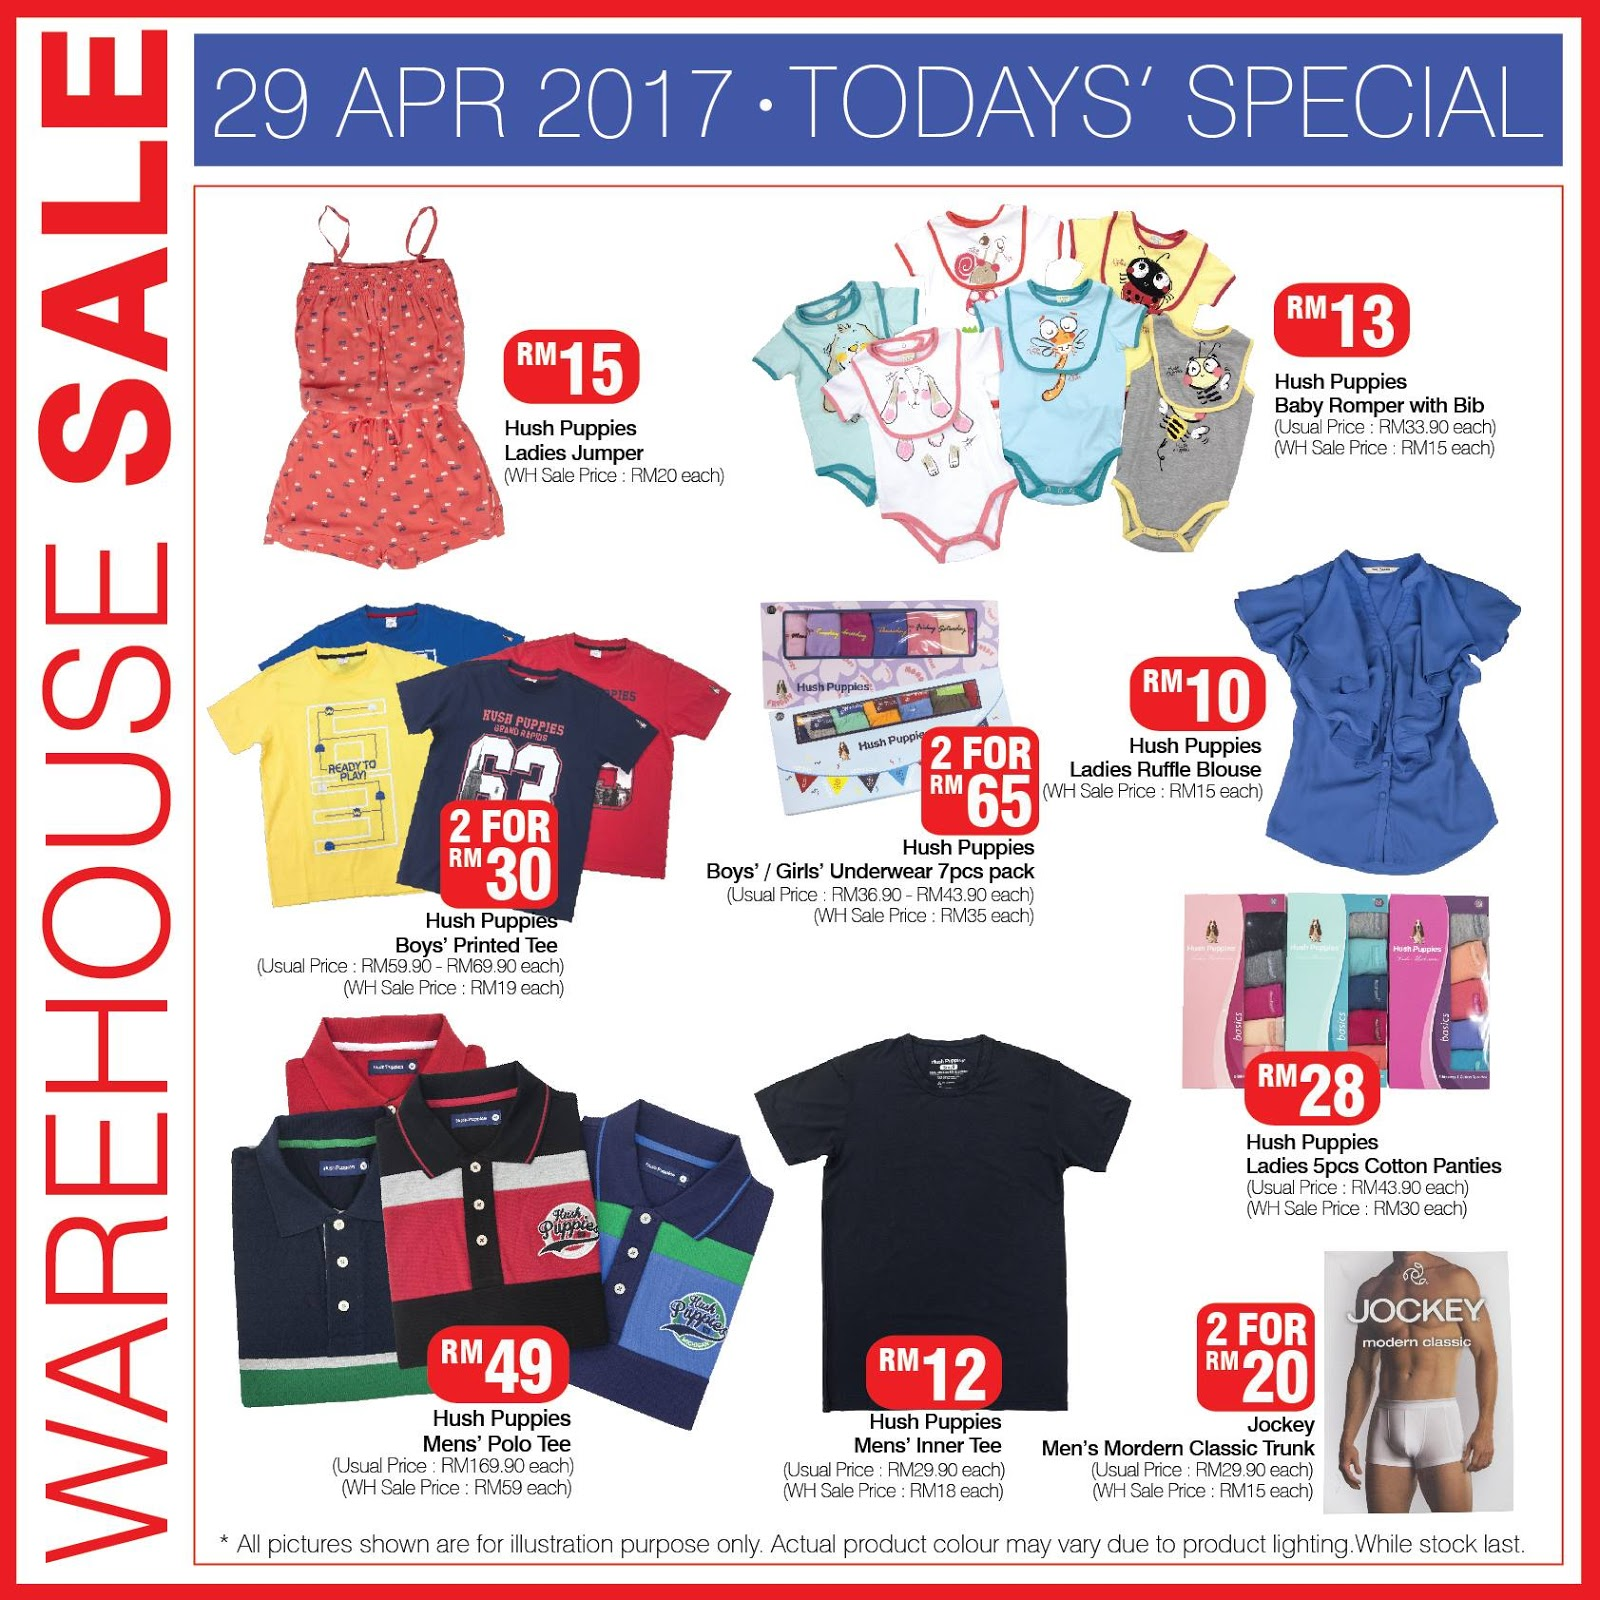 Hush Puppies Apparel Warehouse Sale Up to 80% Discount   FREE BPA ... 0e707a46e9